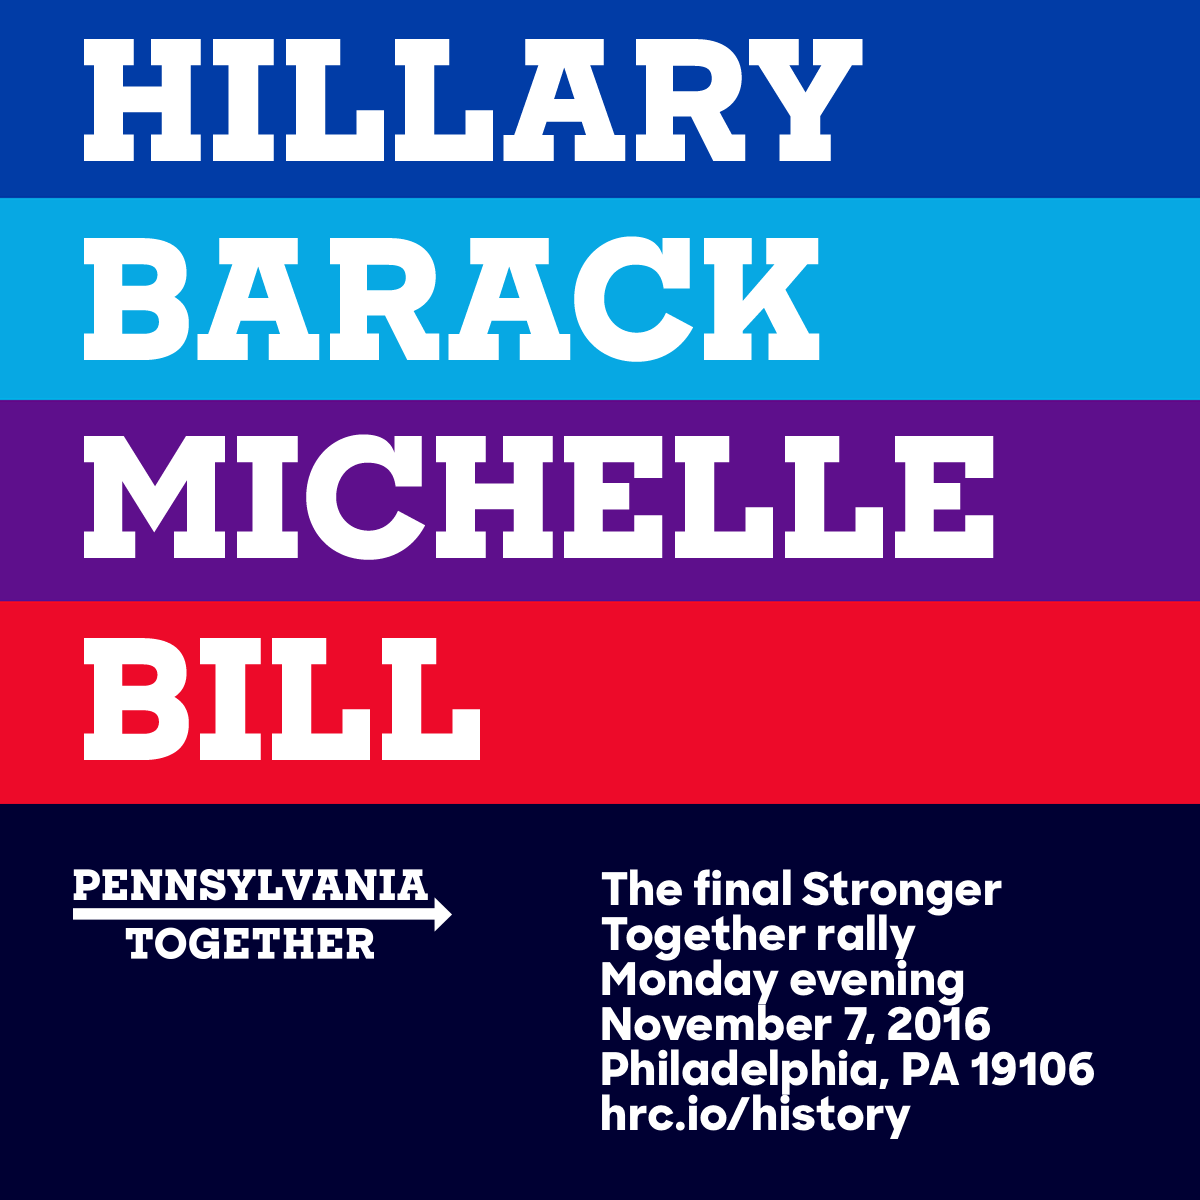 PA-Final-Rally-nolocation-NAMES-FB-110516.png